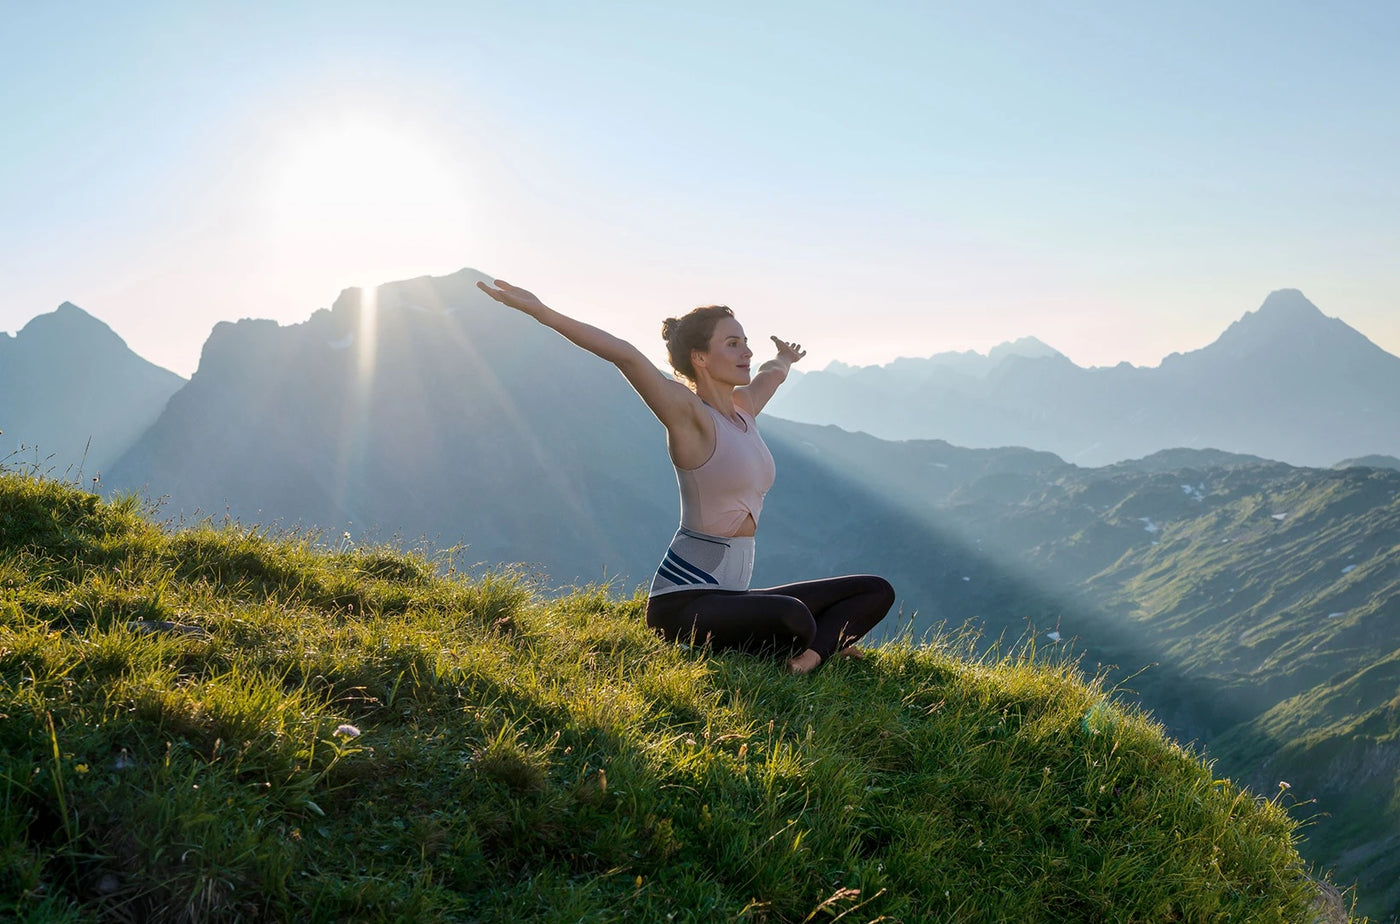 Woman sitting on grass on top of a mountain, spreading her hands out, and wearing a back brace made by Bauerfeind.